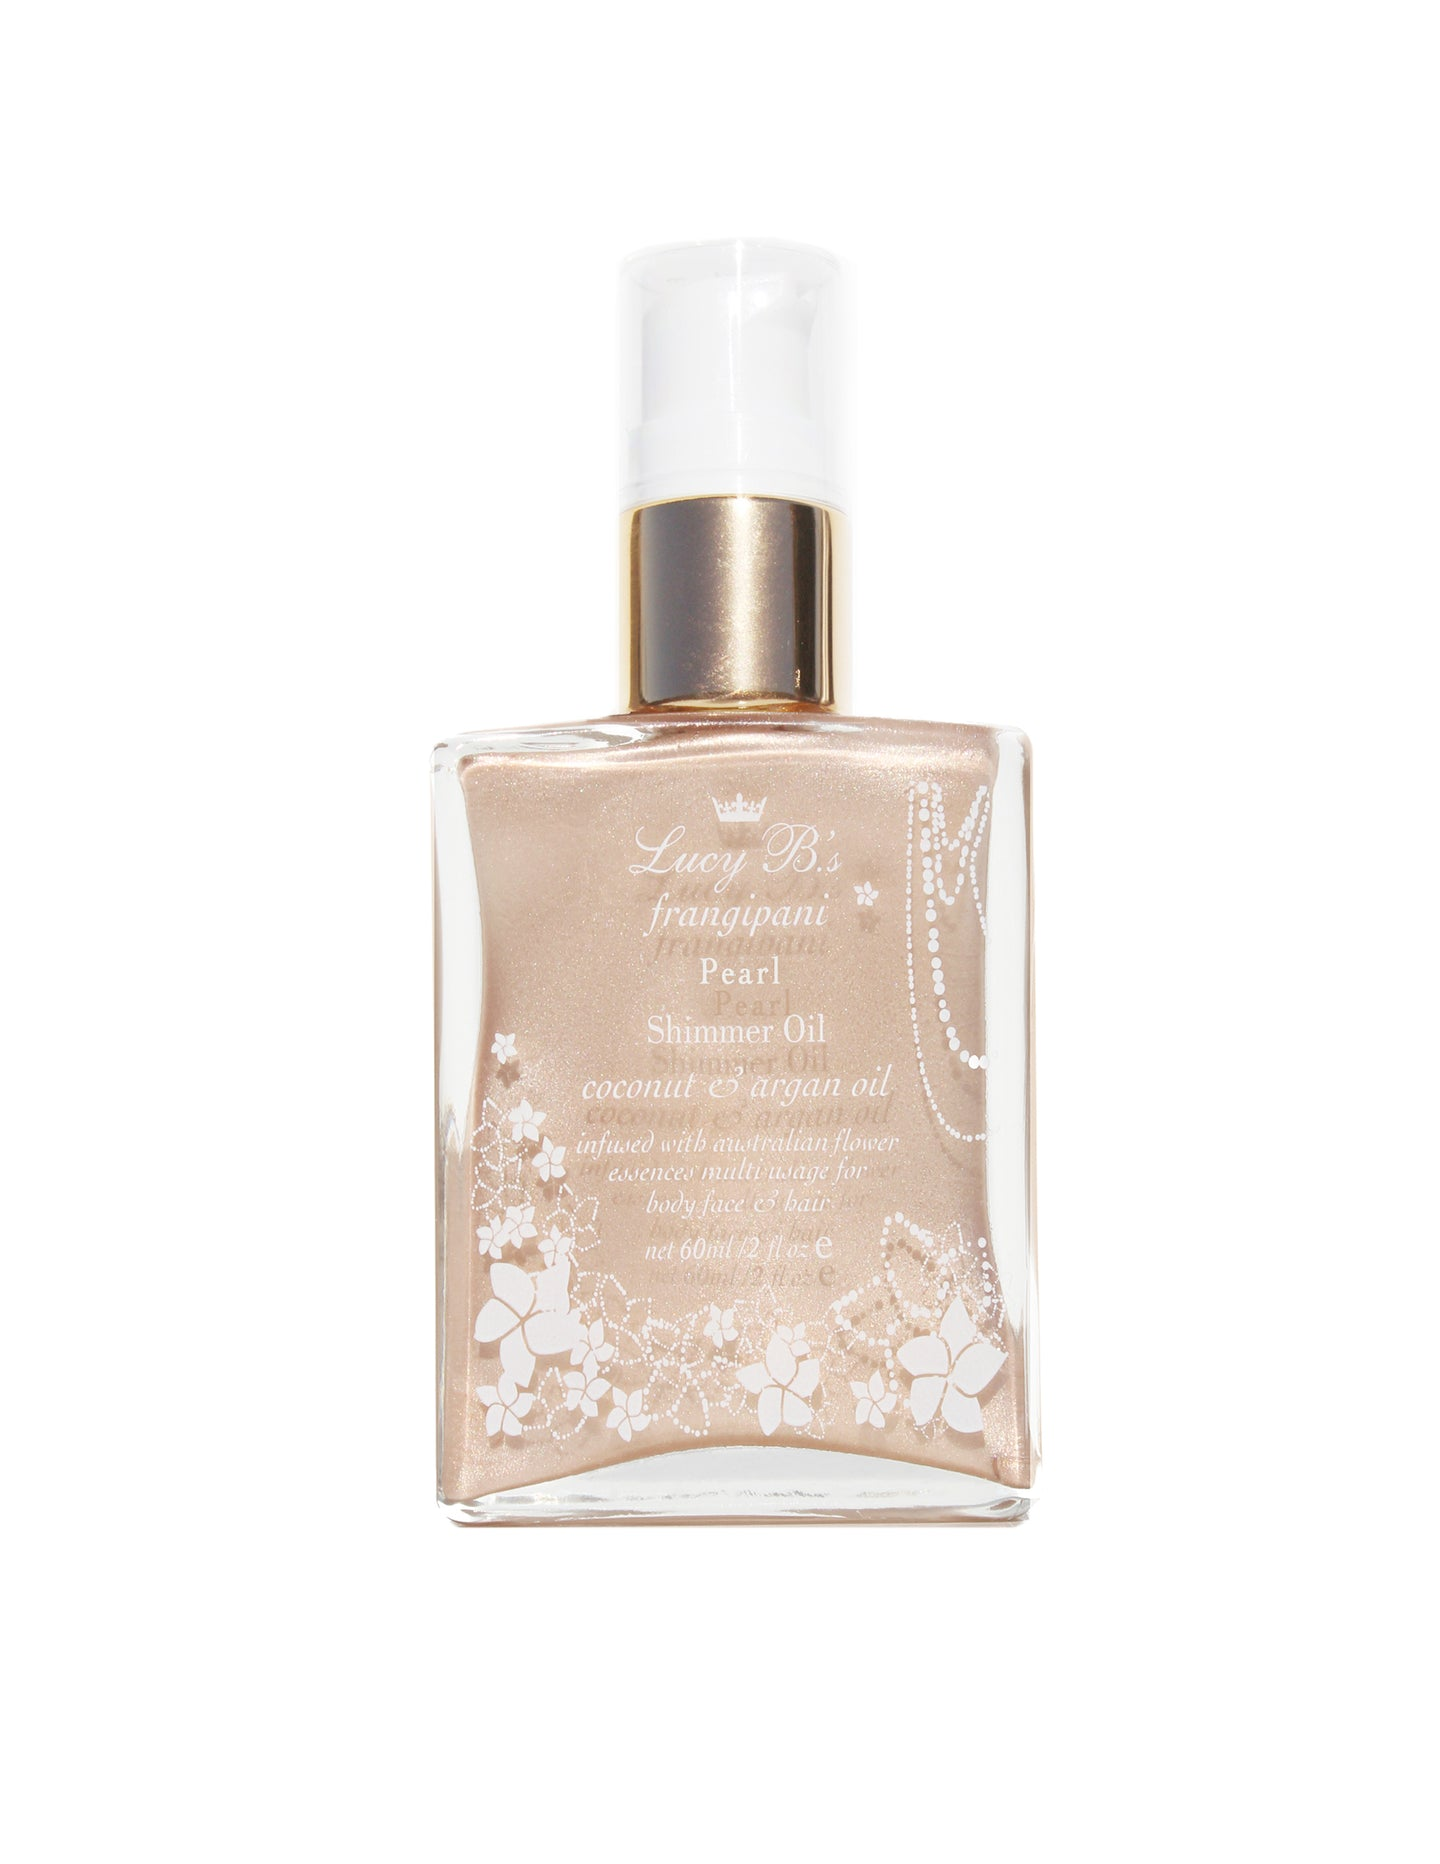 Pearl Shimmer Oil - 60ml | Lucy B's